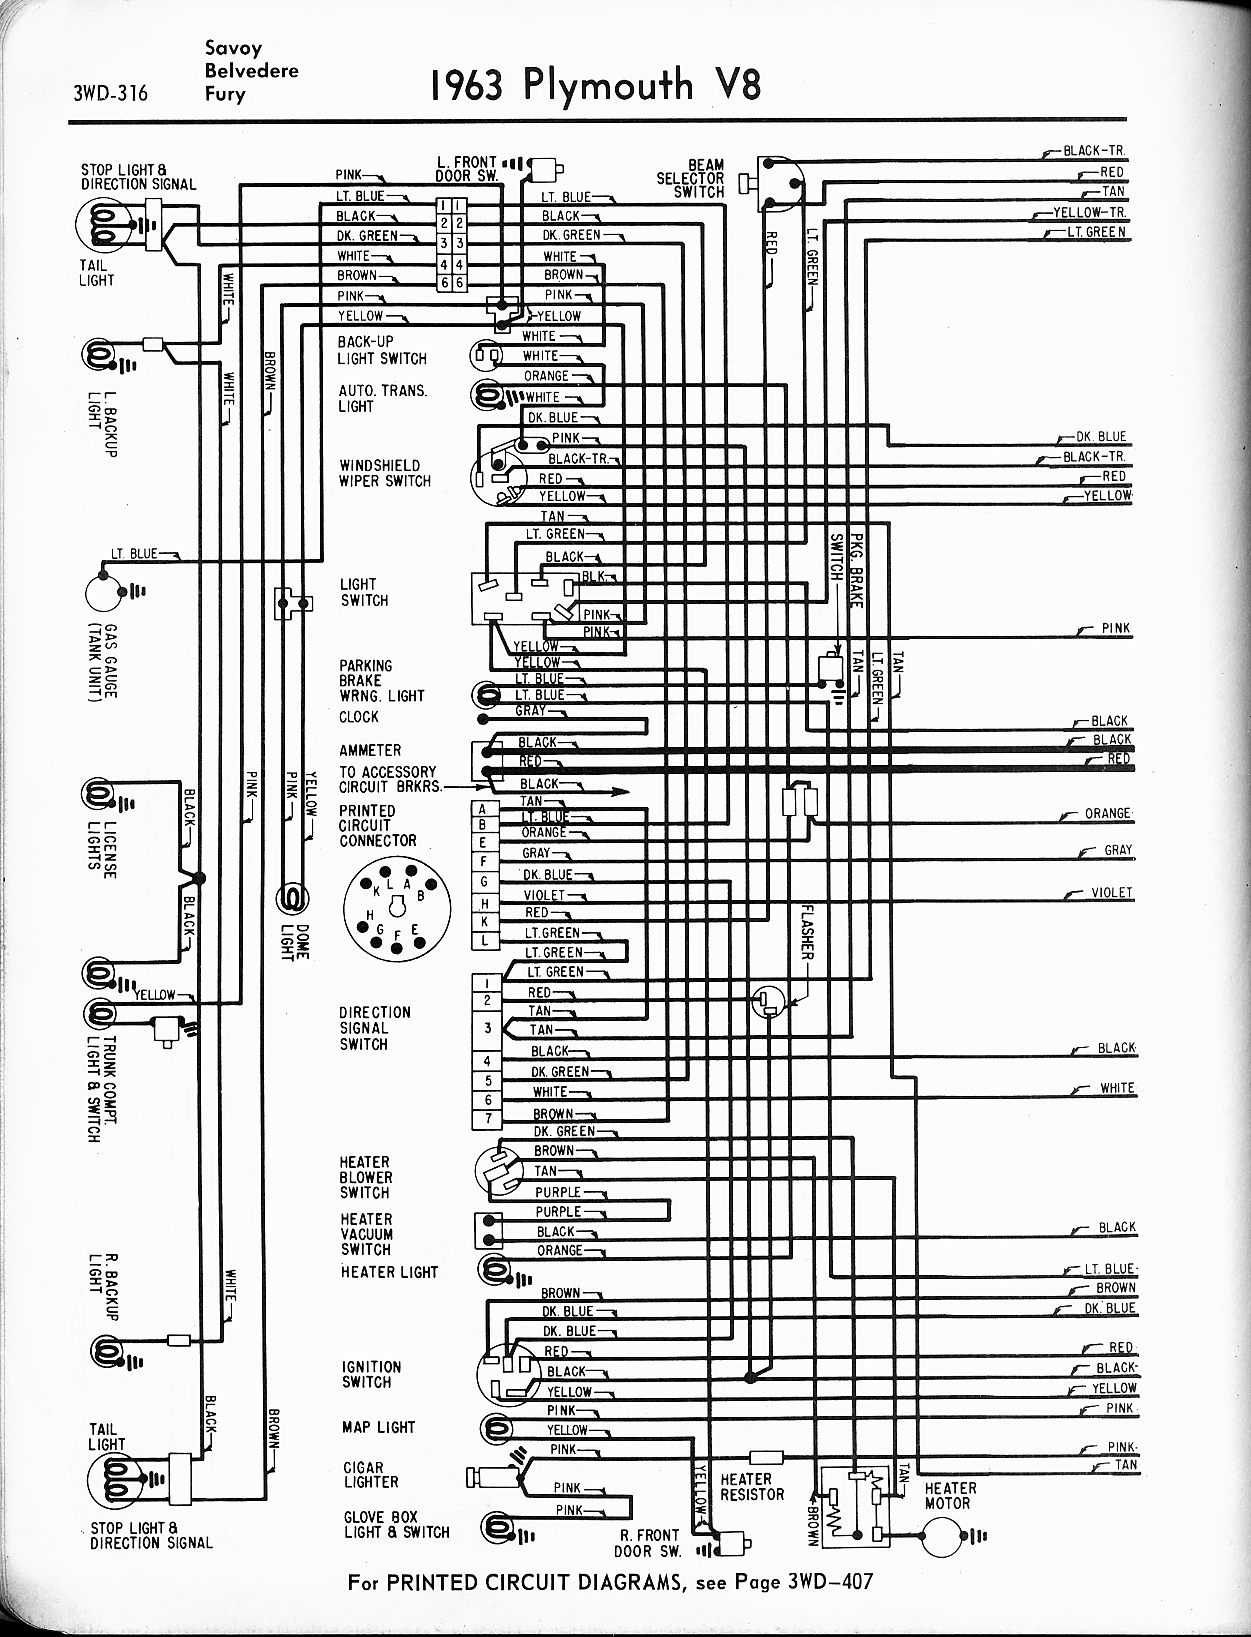 1956 1965 plymouth wiring the old car manual project rh oldcarmanualproject com Mopar Wiring Diagrams Positive Ground Plymouth Wiring-Diagram